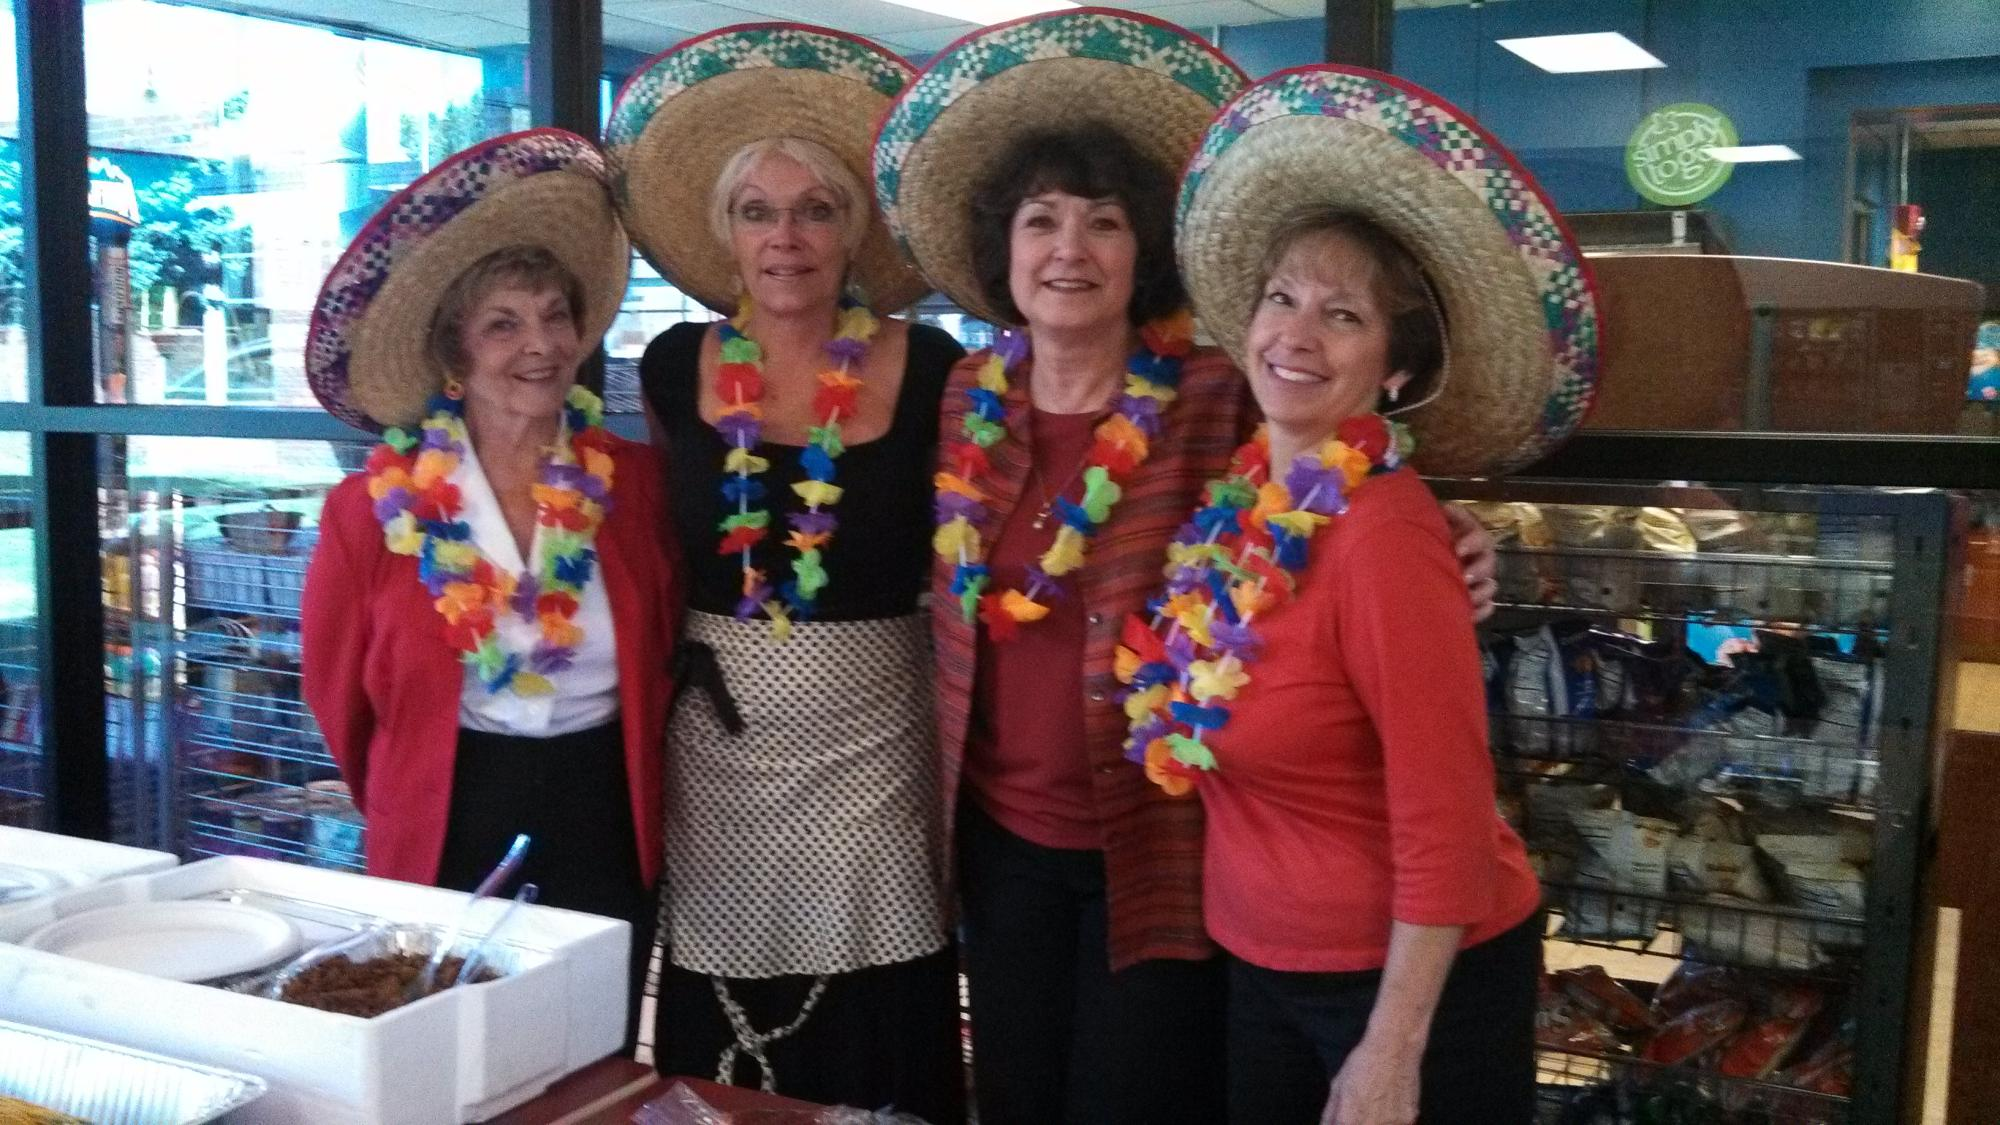 Lions Dian, Jill, Karen and Mary at our lunch fundraiser